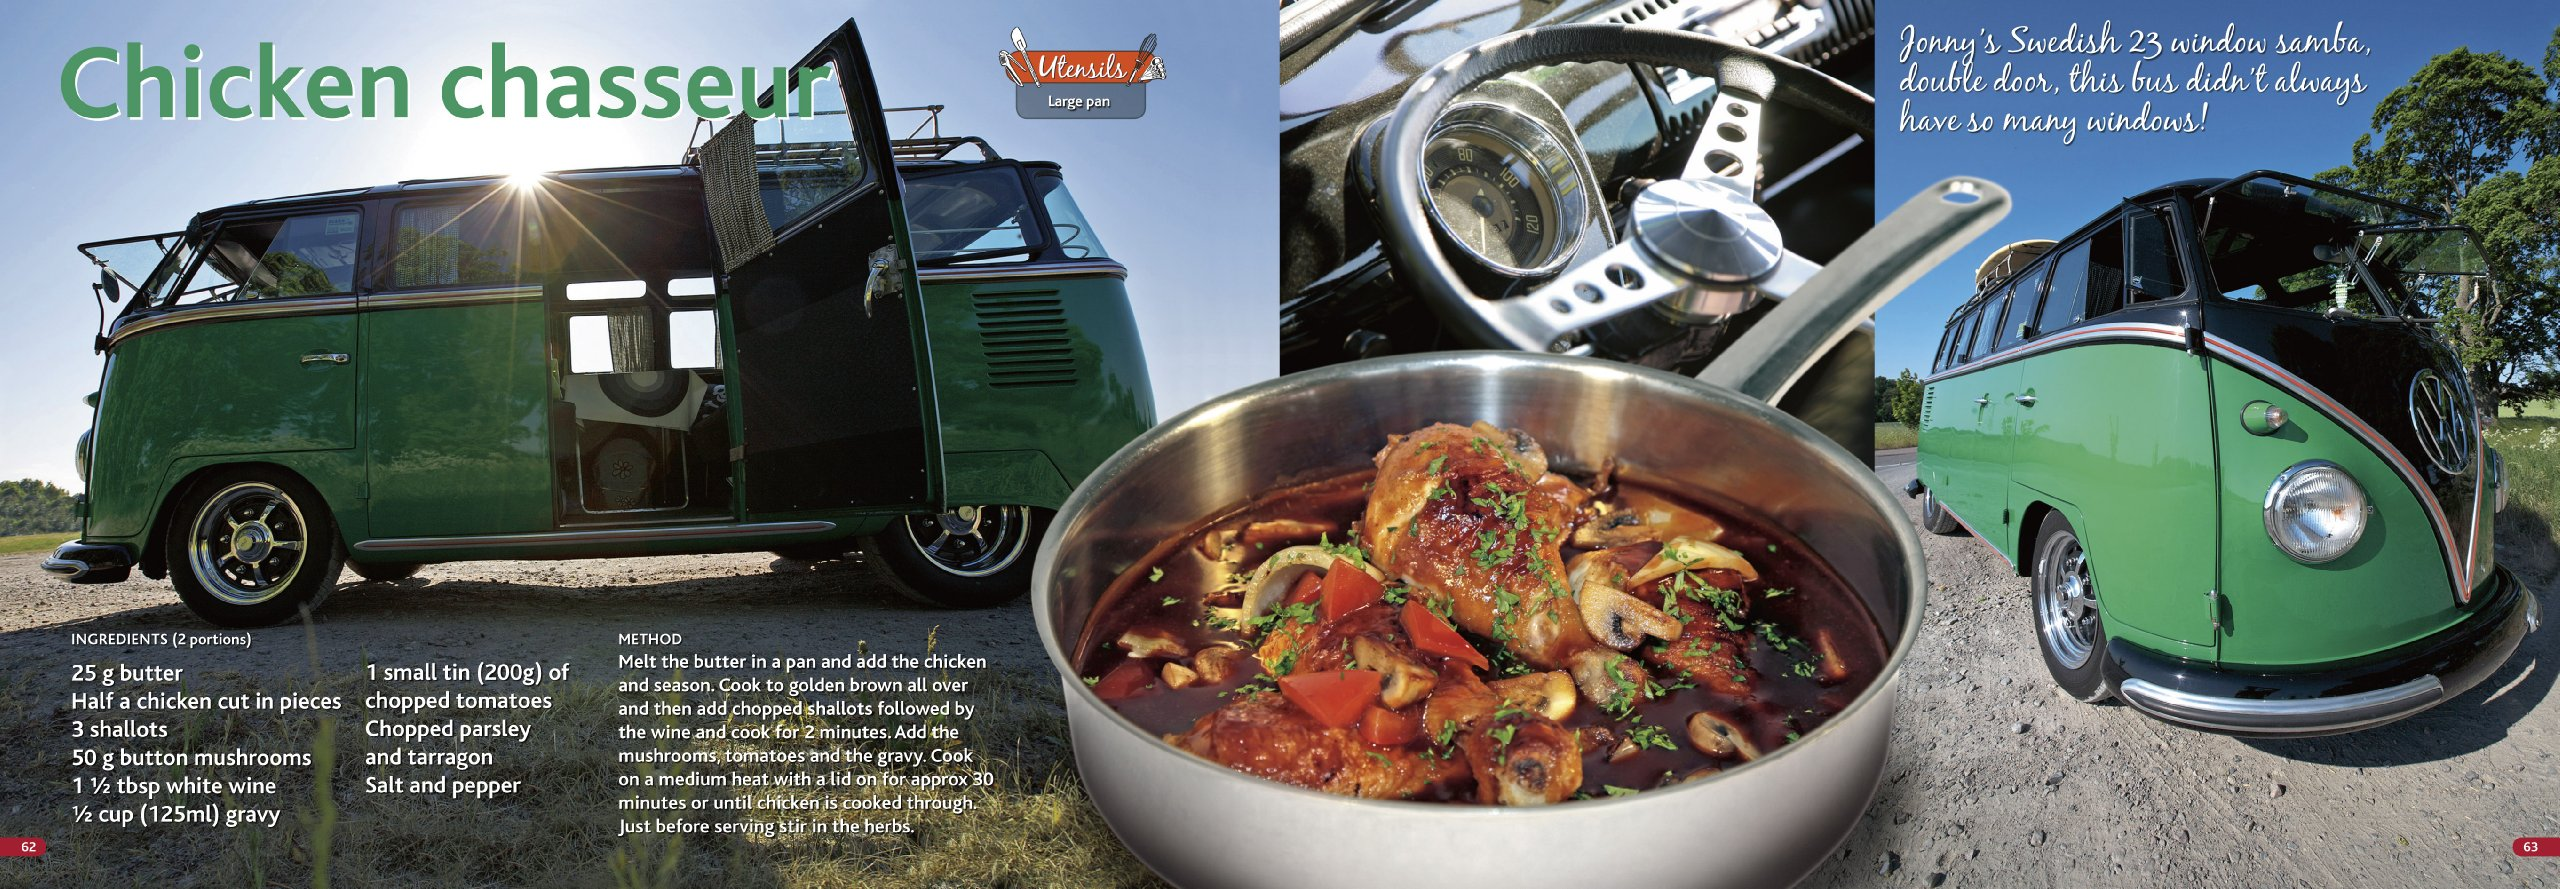 Reviews me and my volkswagen cooking recipes owners features - The Original Vw Camper Cookbook 80 Tasty Recipes Specially Composed For Cooking In A Camper Lennart Hannu Steve Rooker Susanne Rooker 9789163196843